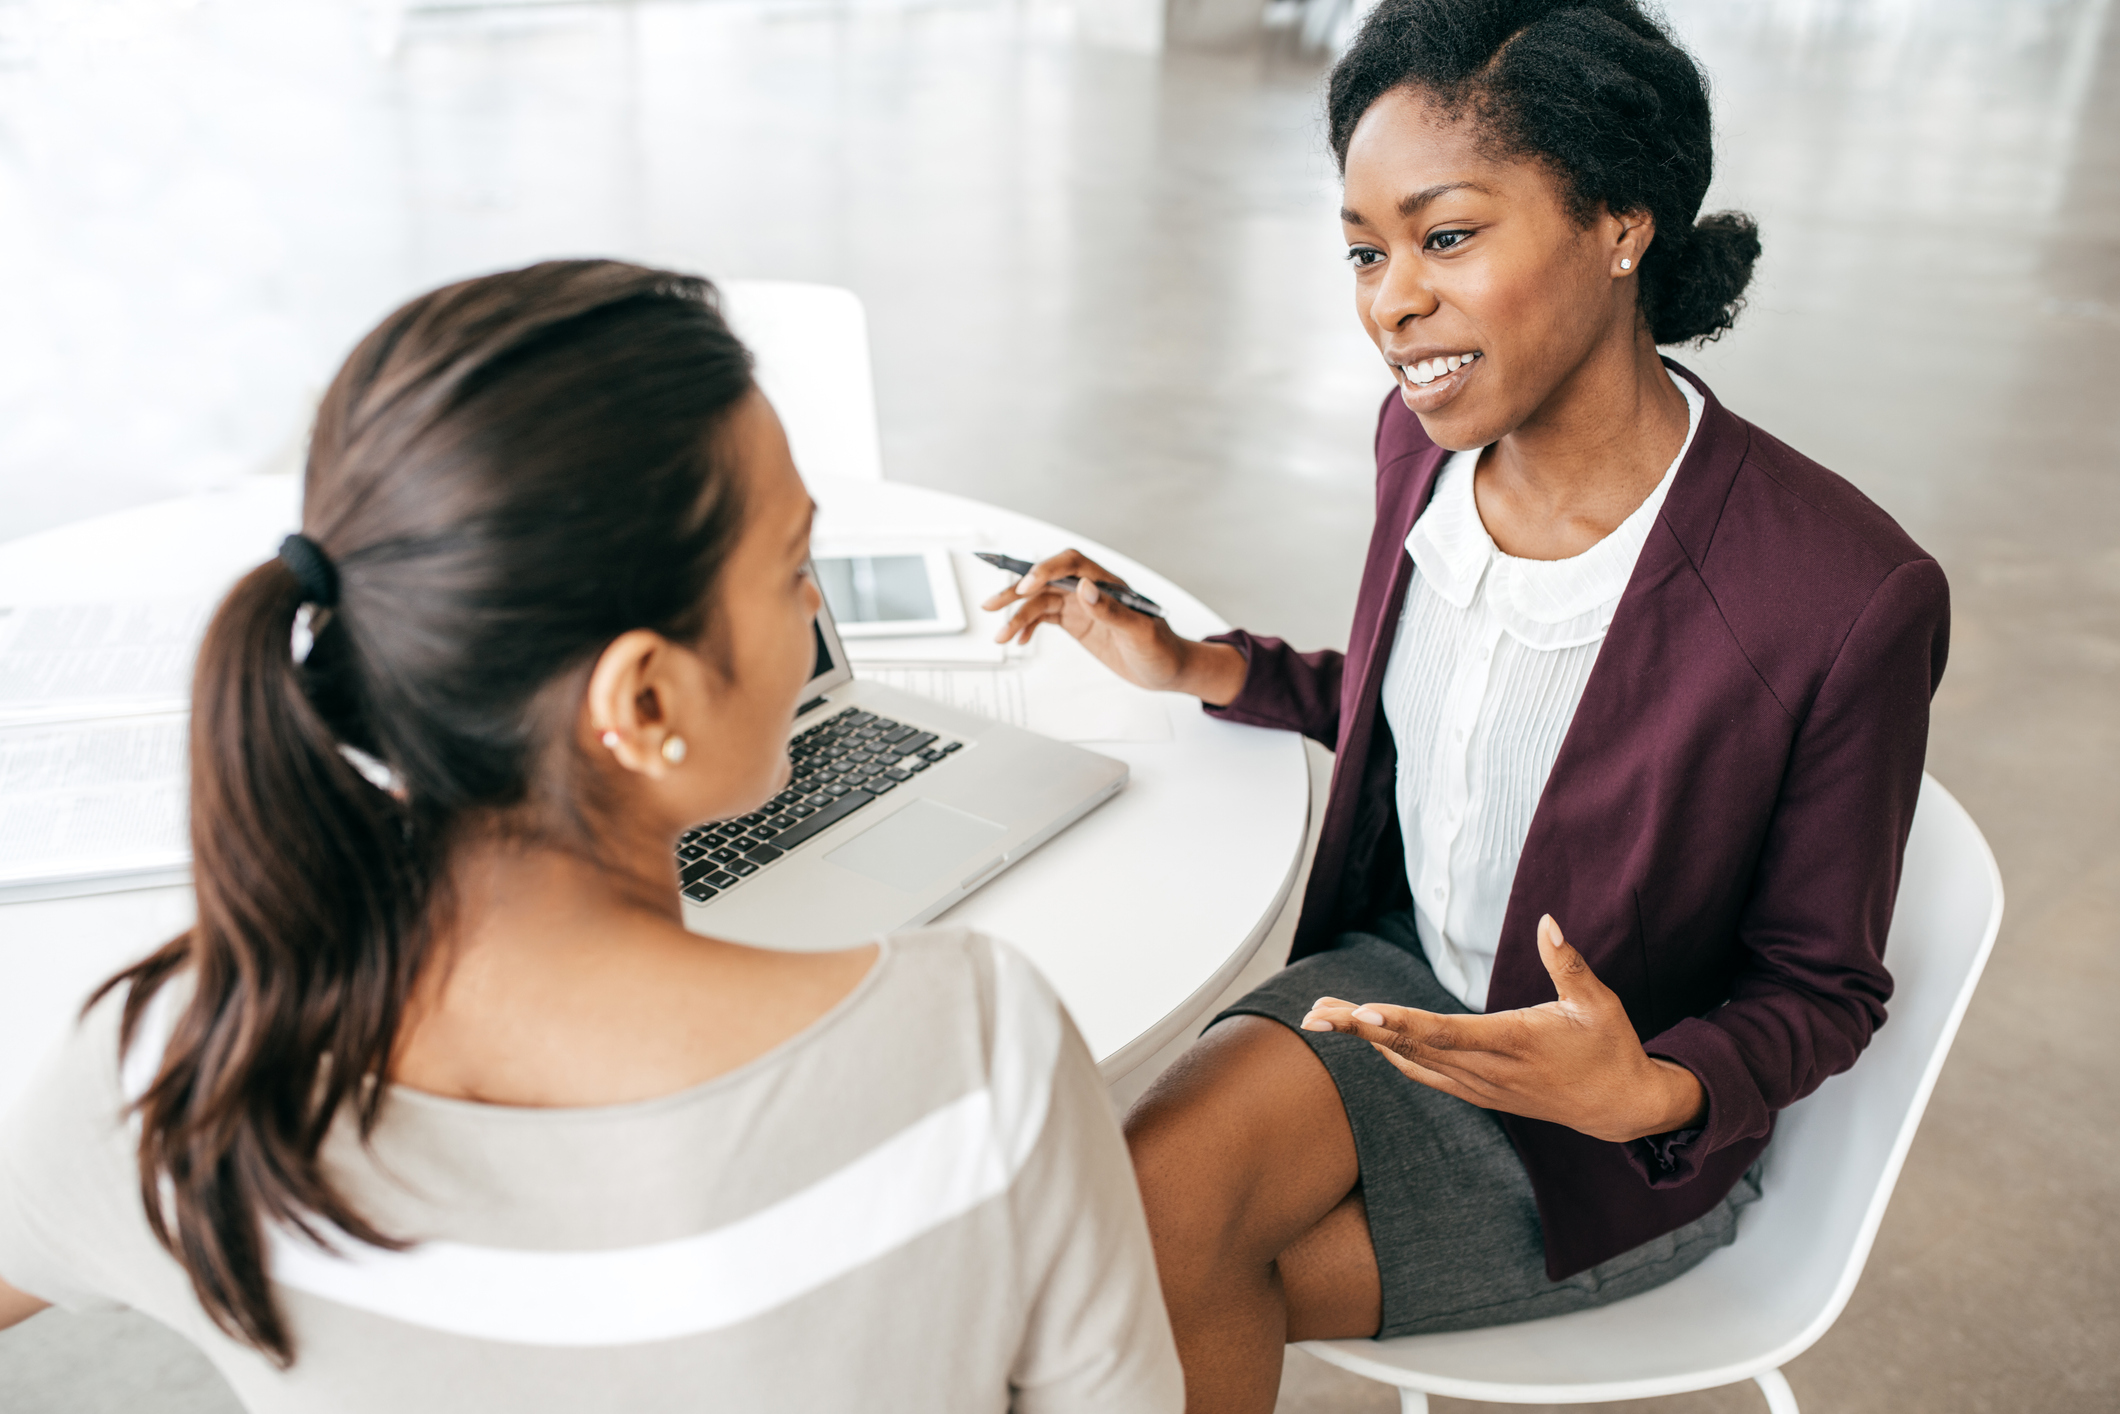 Image of a woman getting mentored